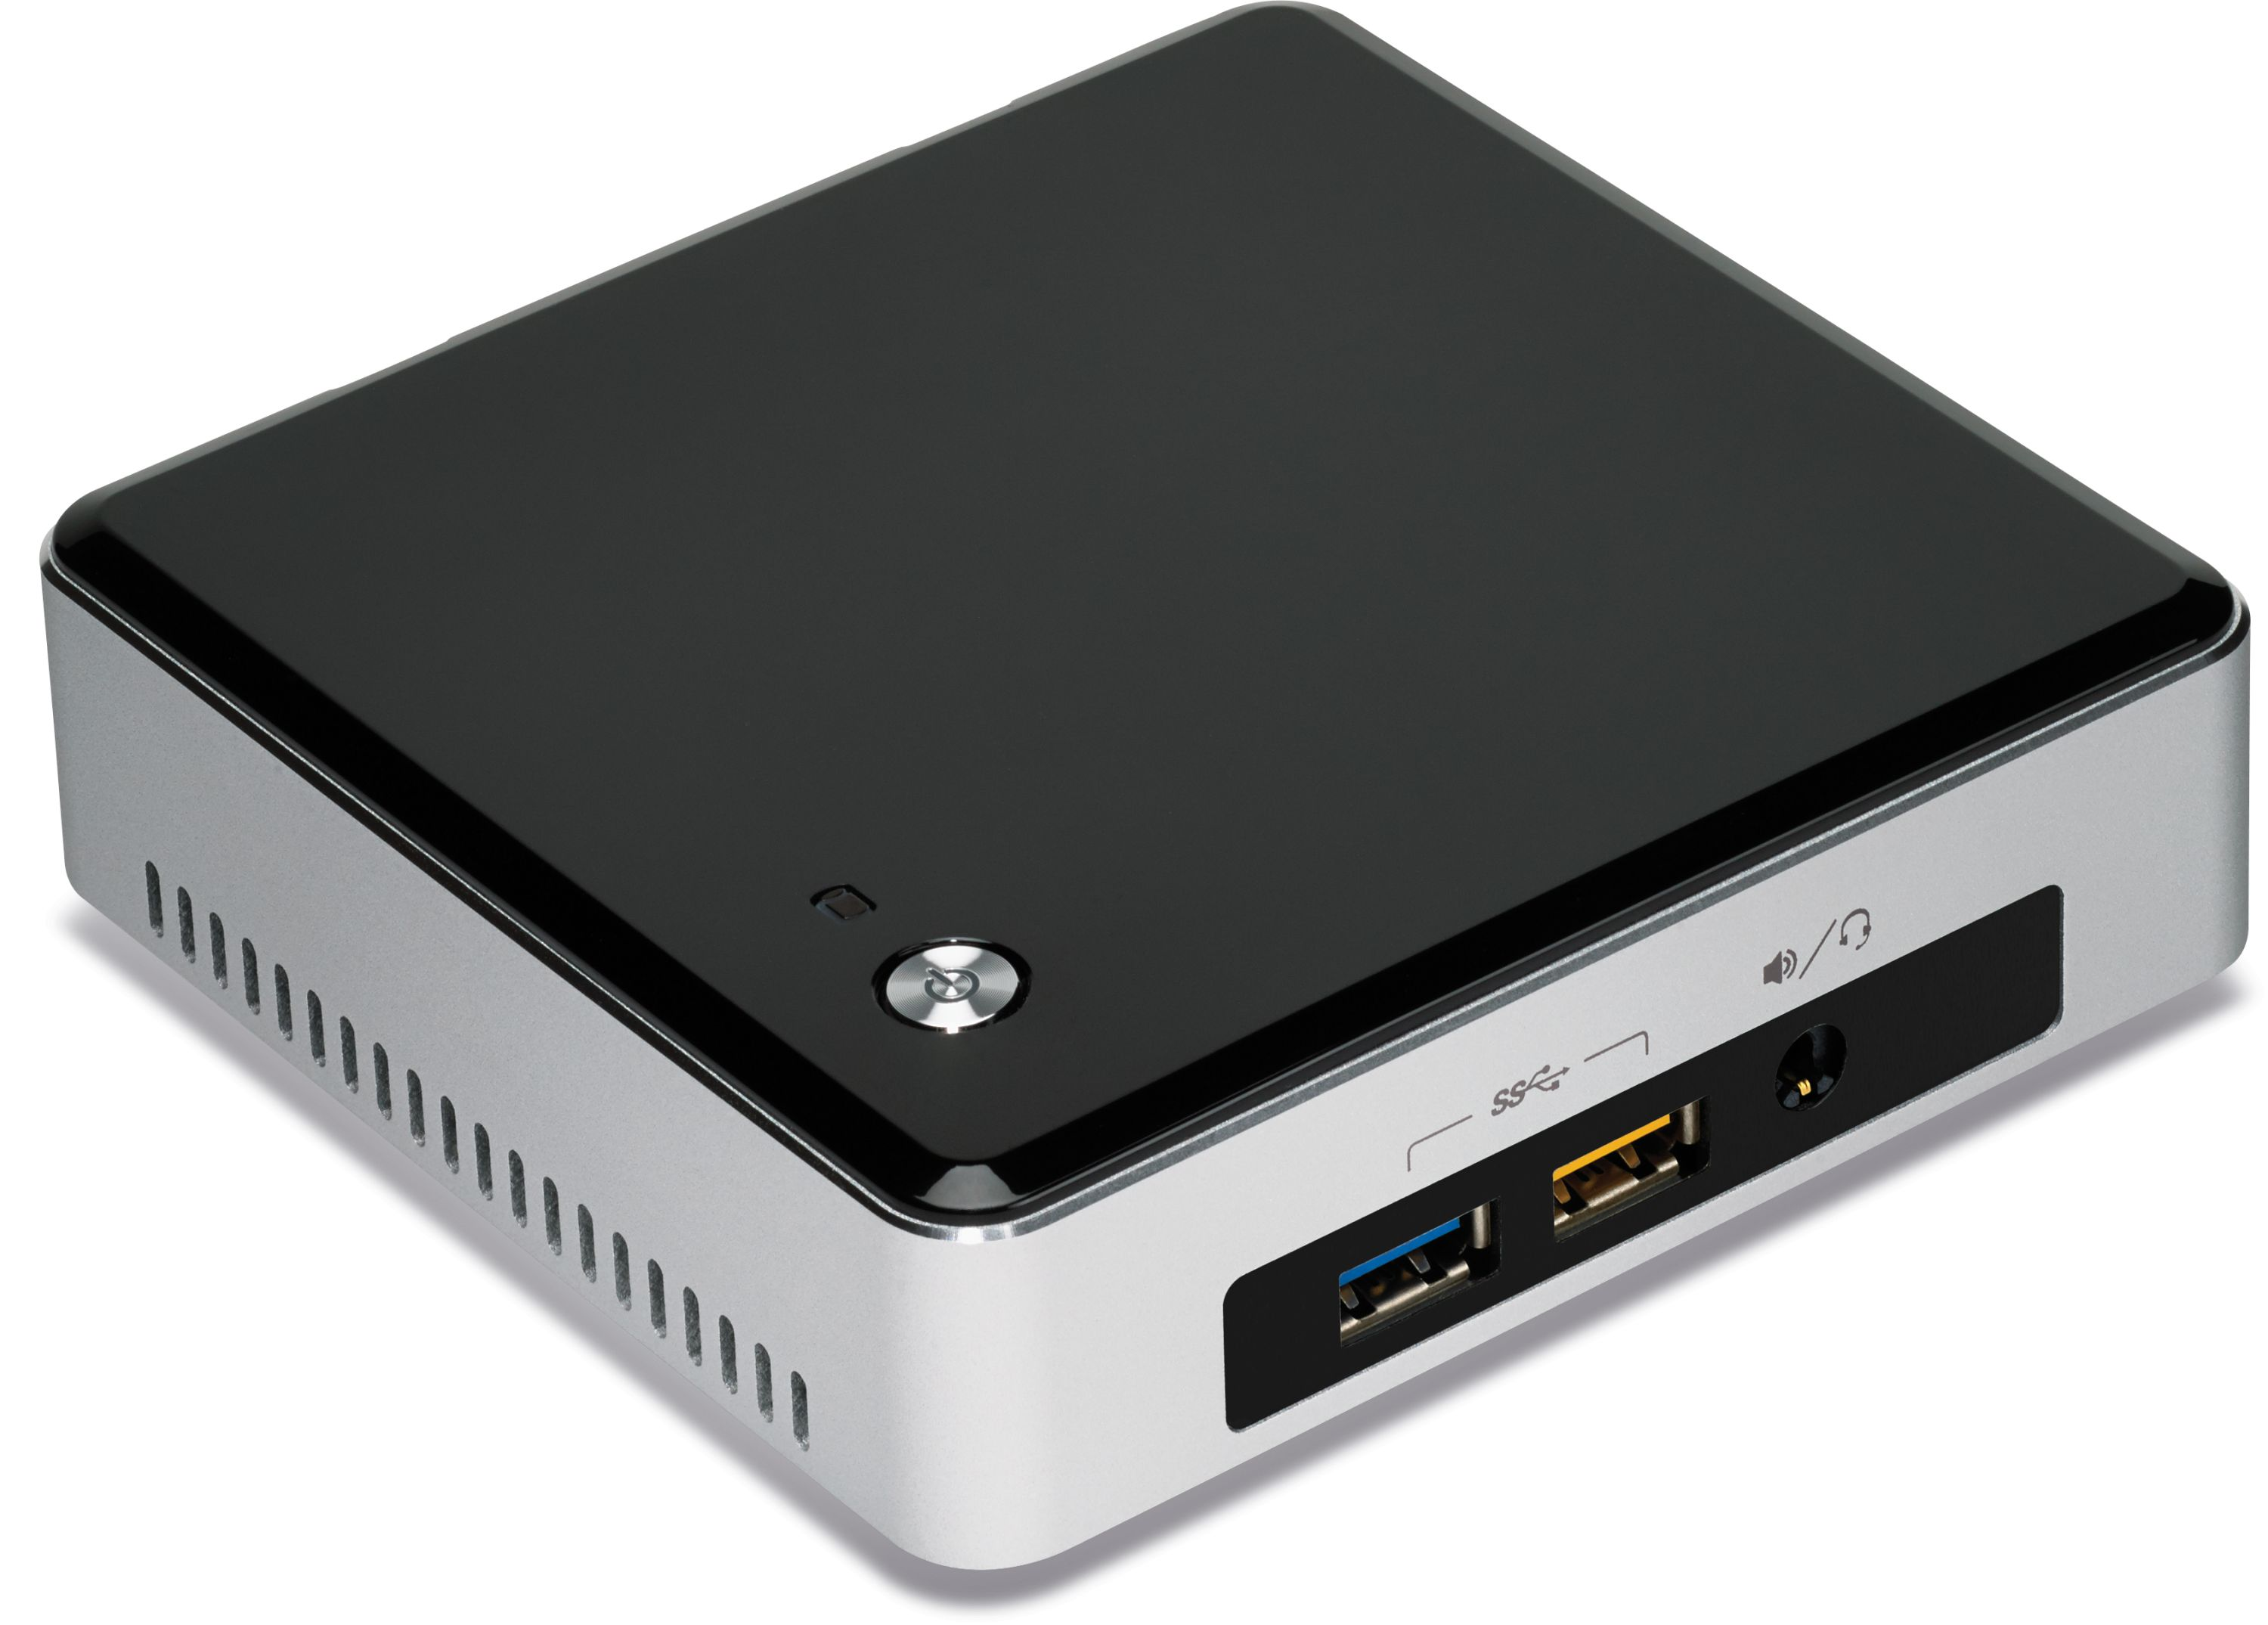 intel nuc 5th generation next unit of computing kits. Black Bedroom Furniture Sets. Home Design Ideas